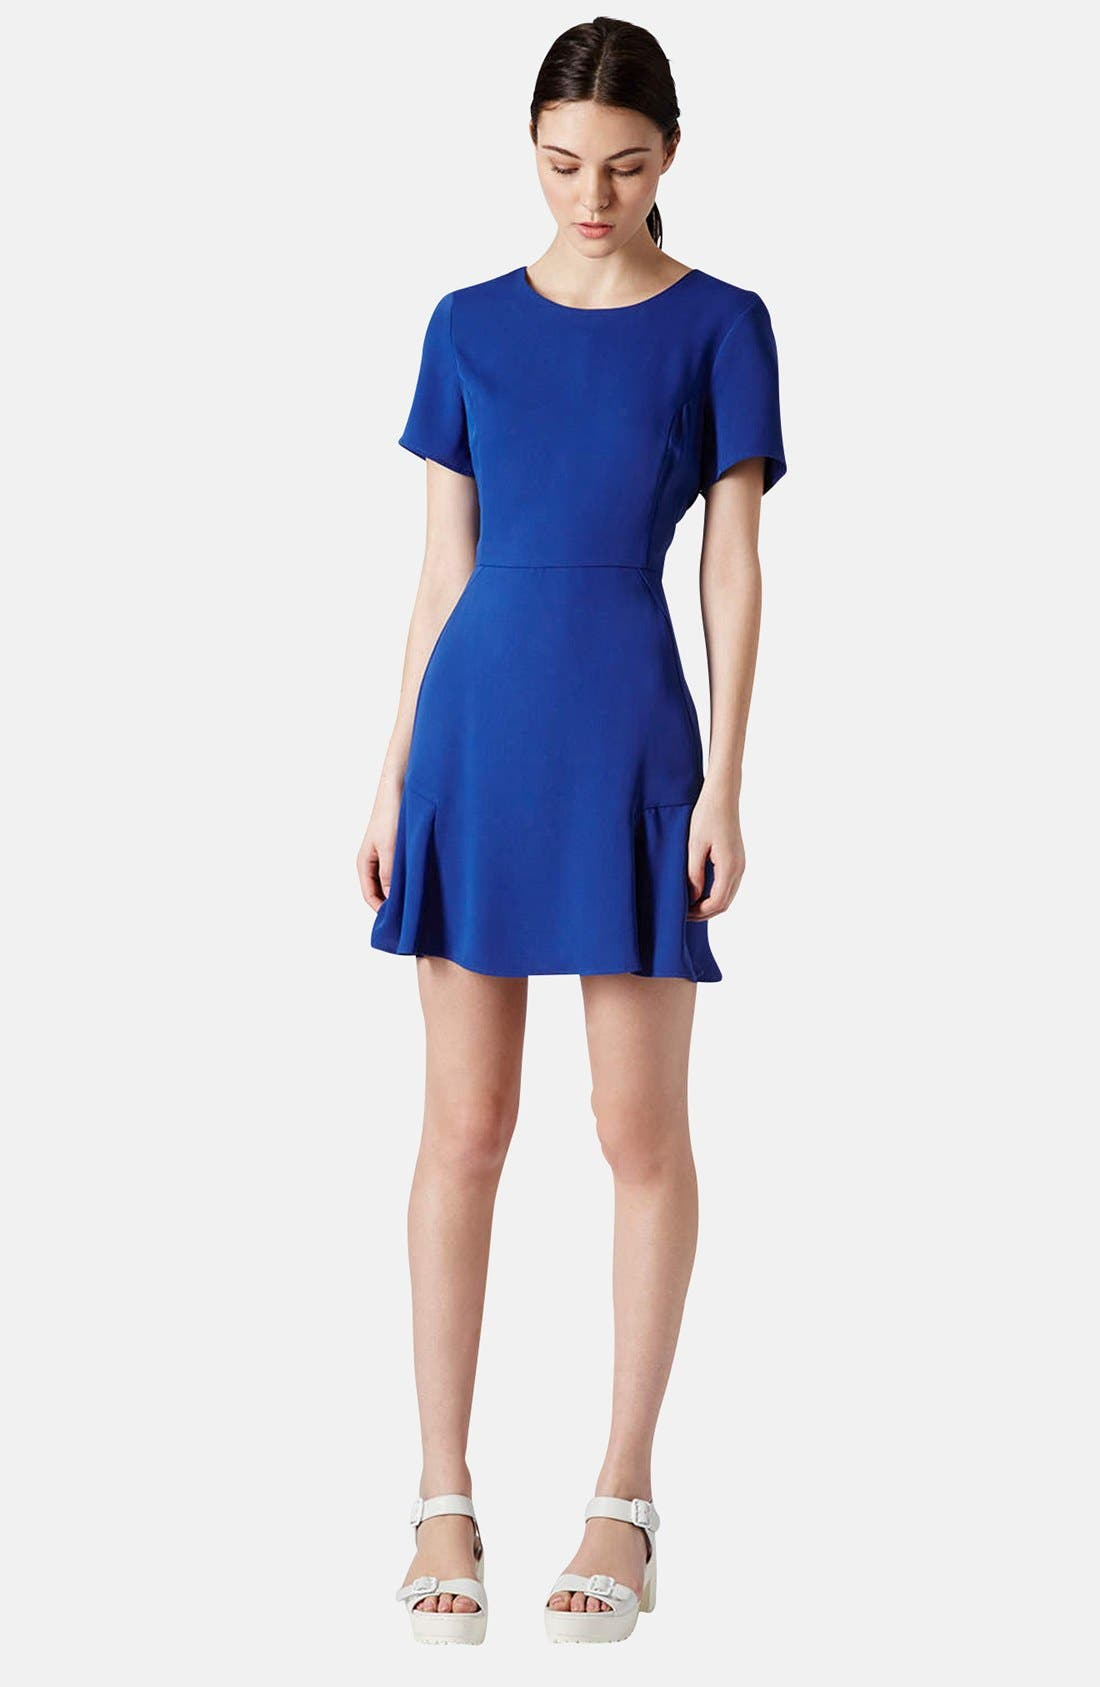 TOPSHOP, Crepe Fit & Flare Dress, Alternate thumbnail 5, color, 430